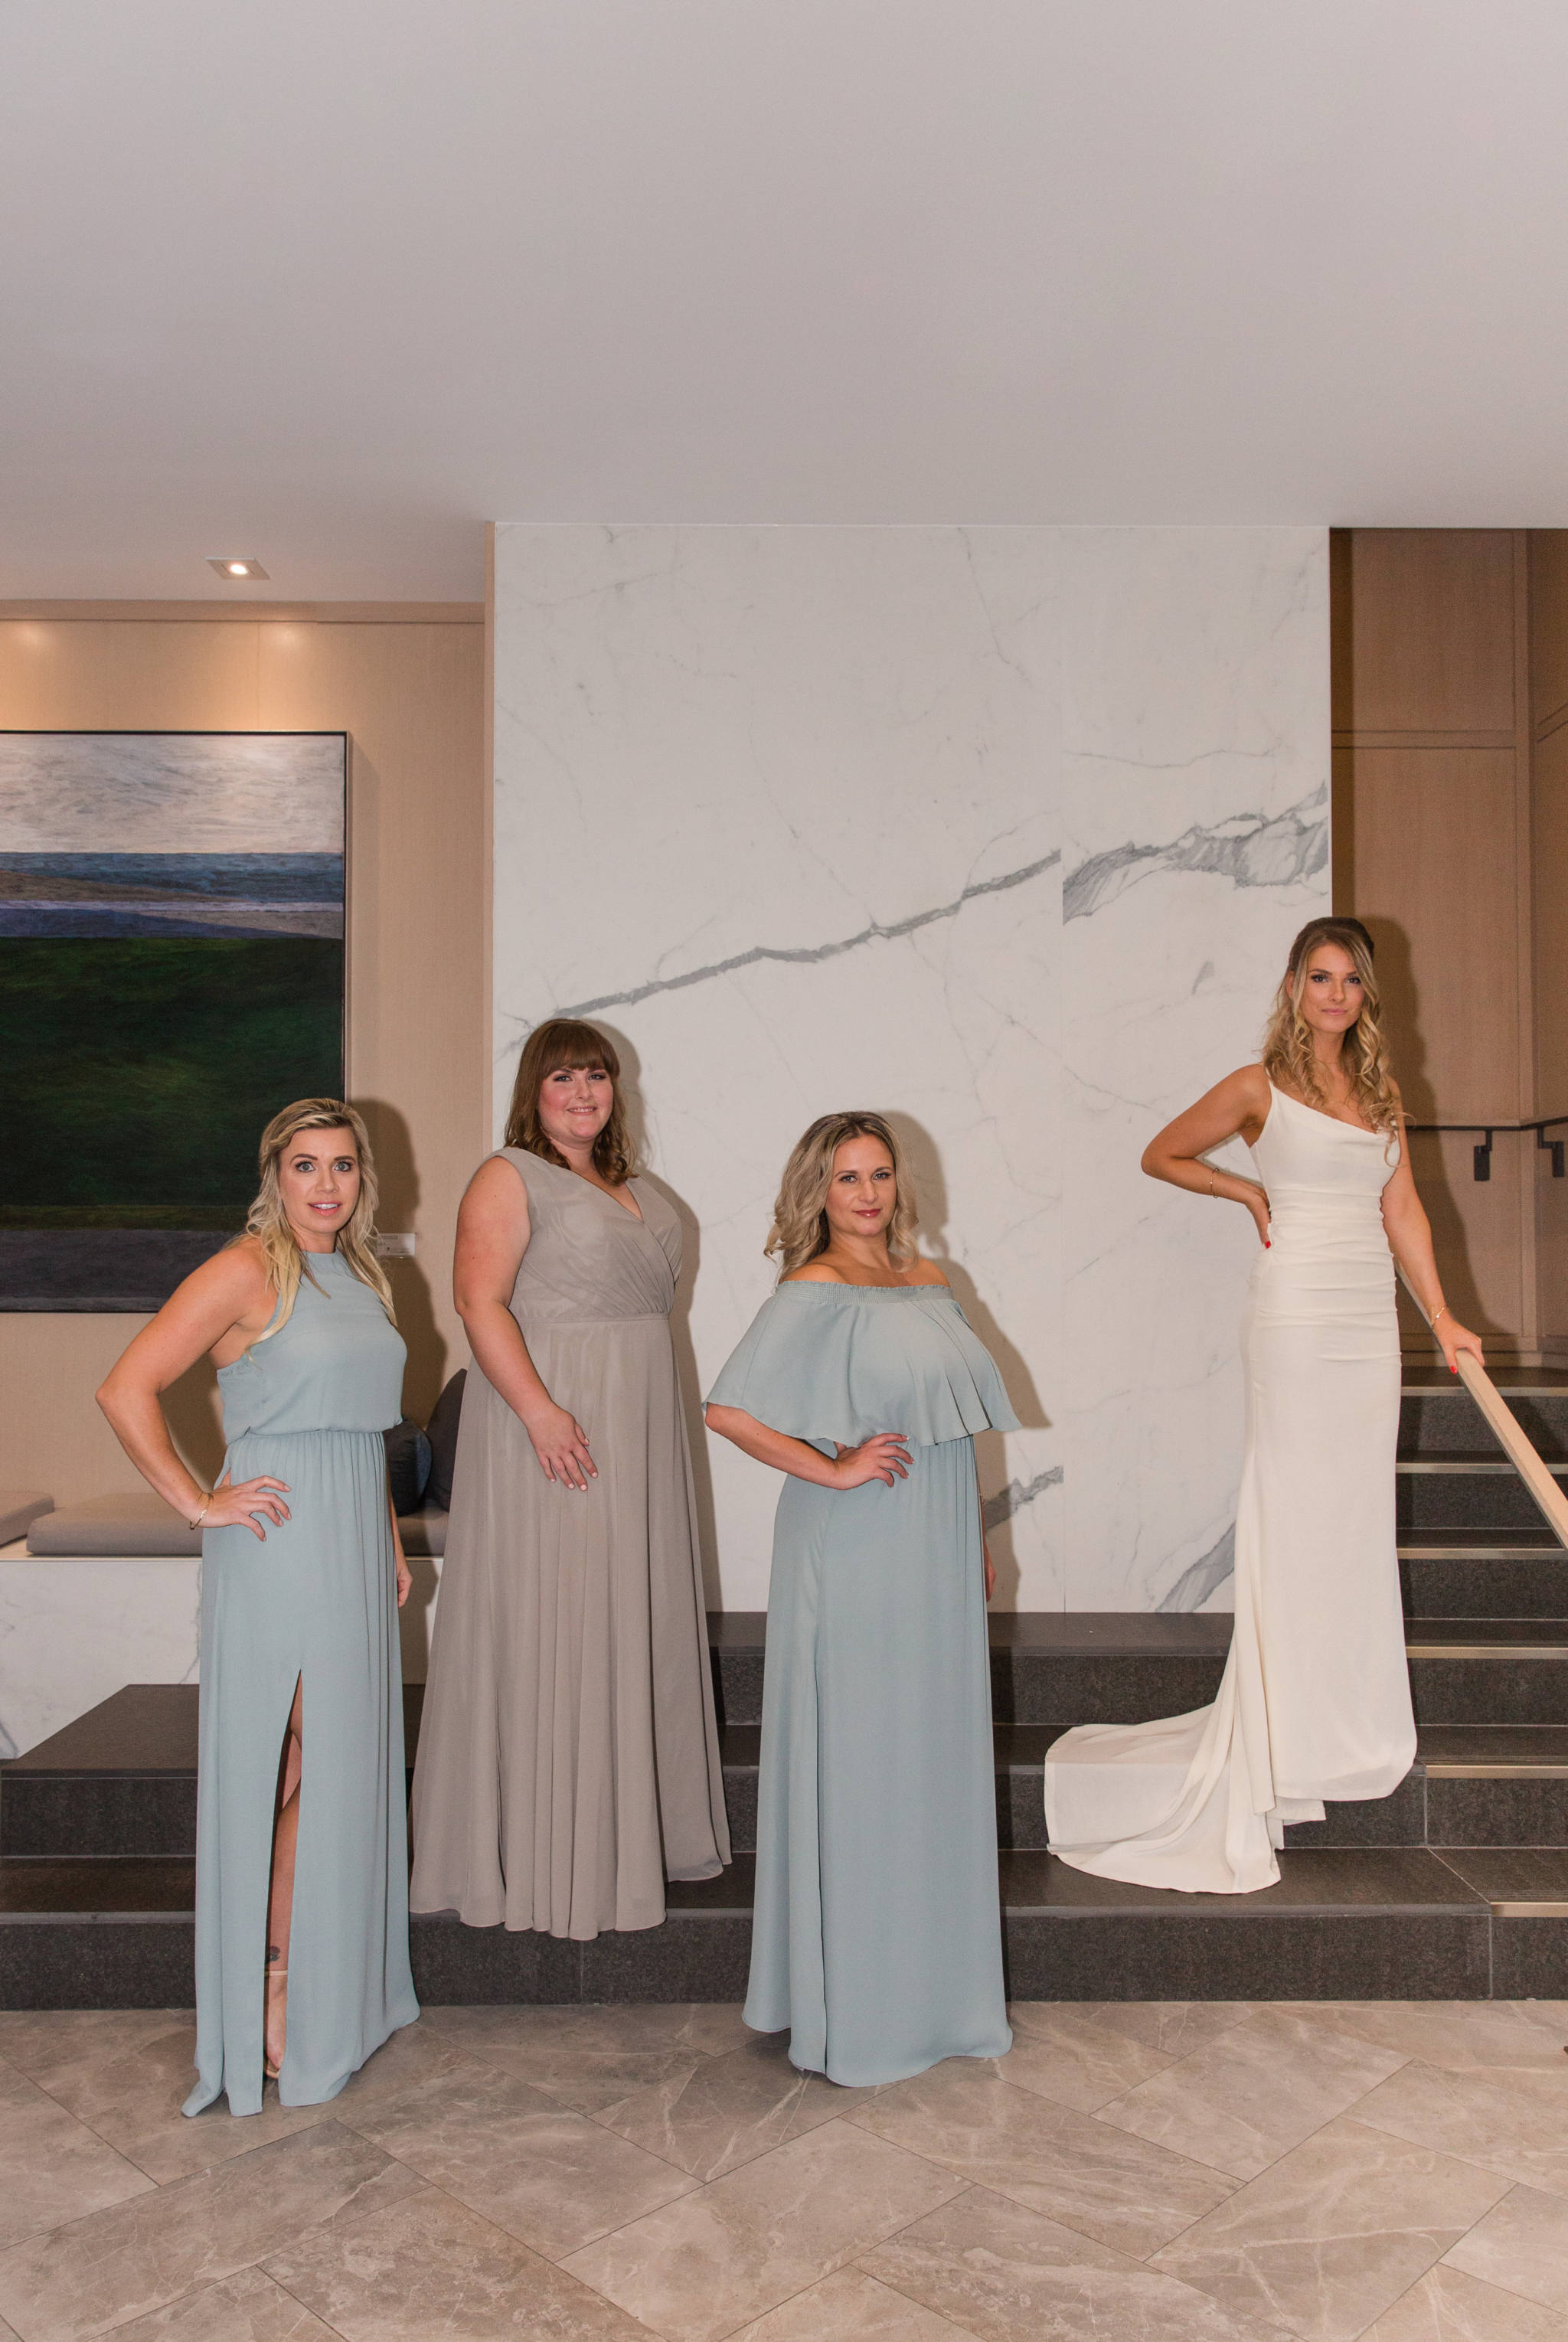 life with aco wedding, three bridesmaids in sage green dresses standing with bride at andaz hotel lobby